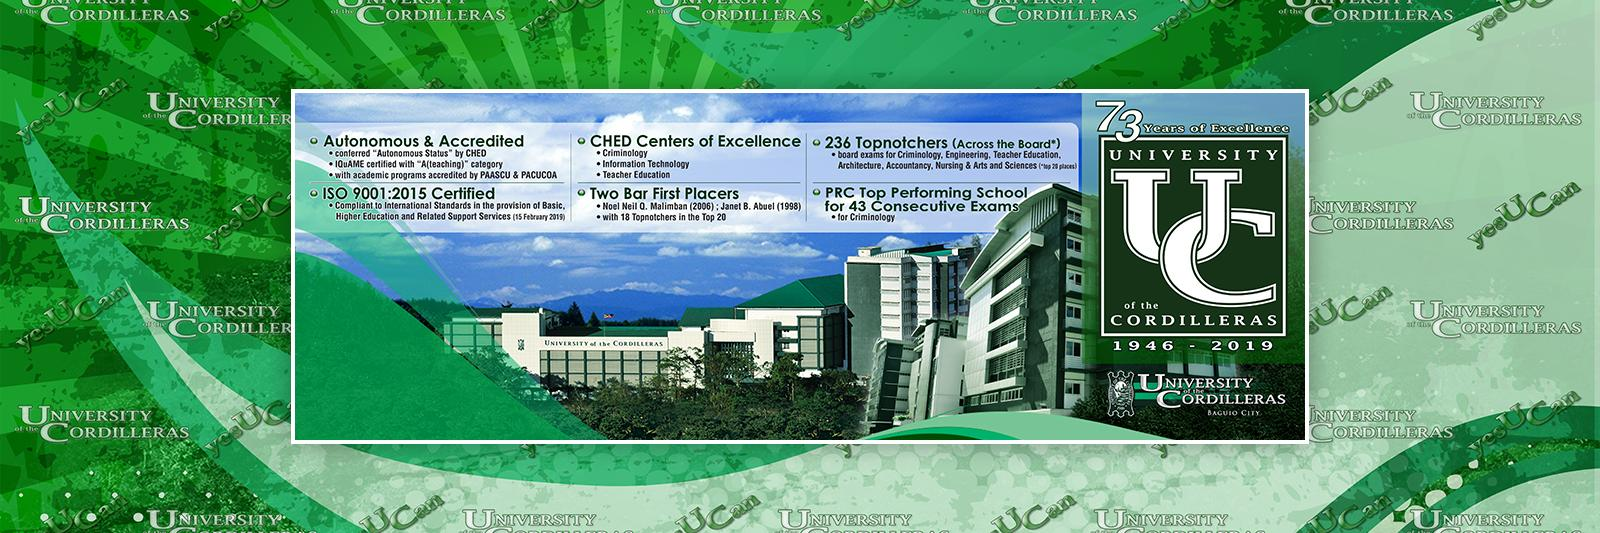 University of the Cordilleras's official Twitter account